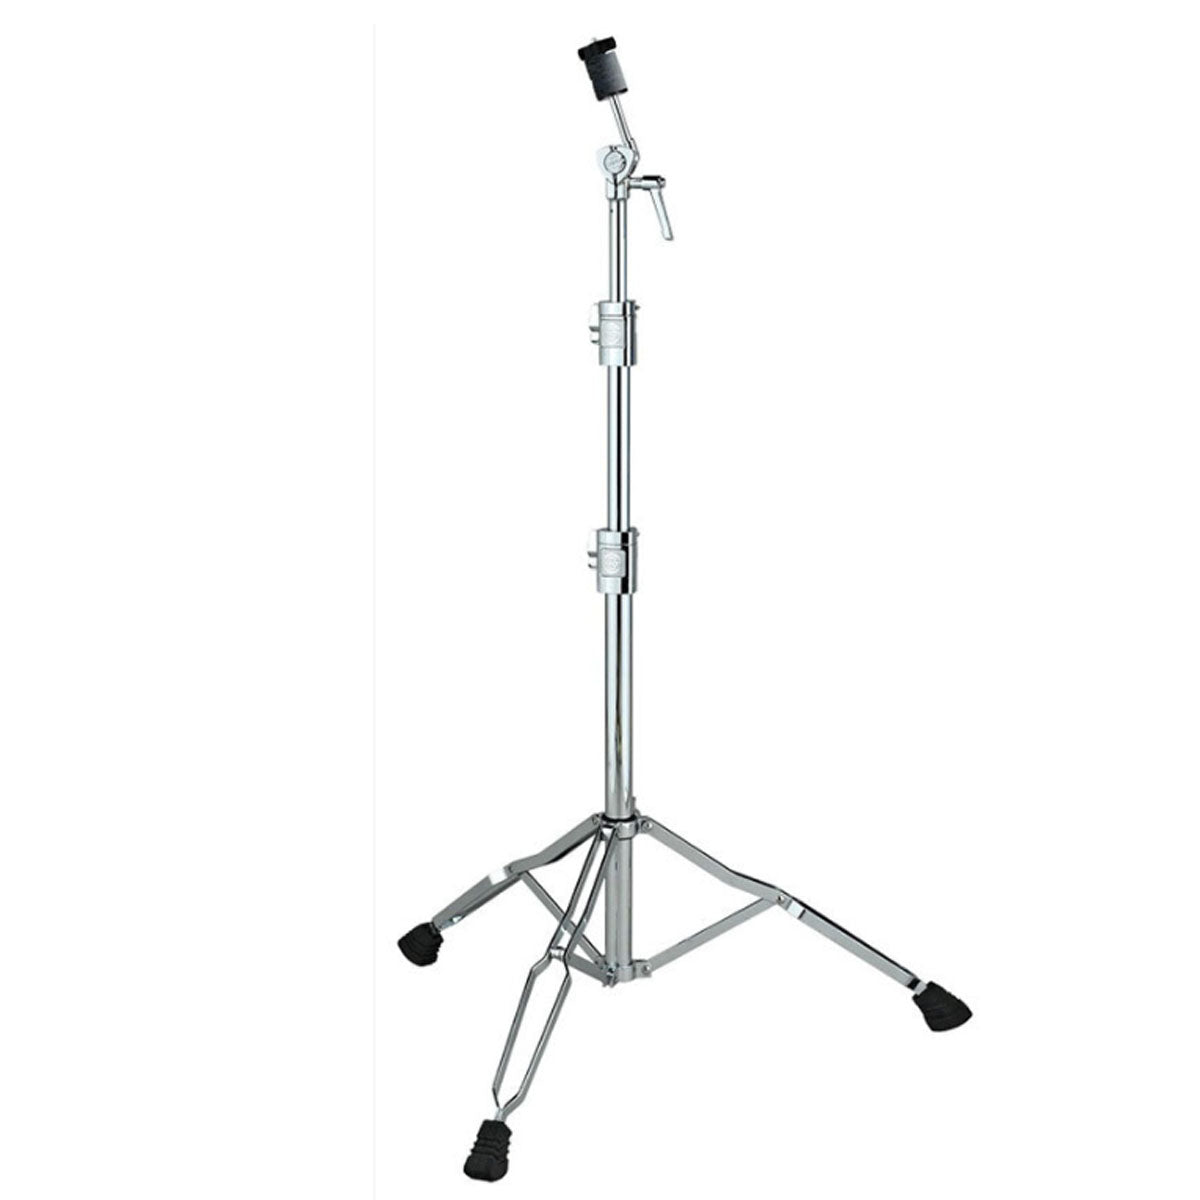 Dixon K Series Straight Cymbal Stand Heavy-Weight Double Braced - PSYK900KS